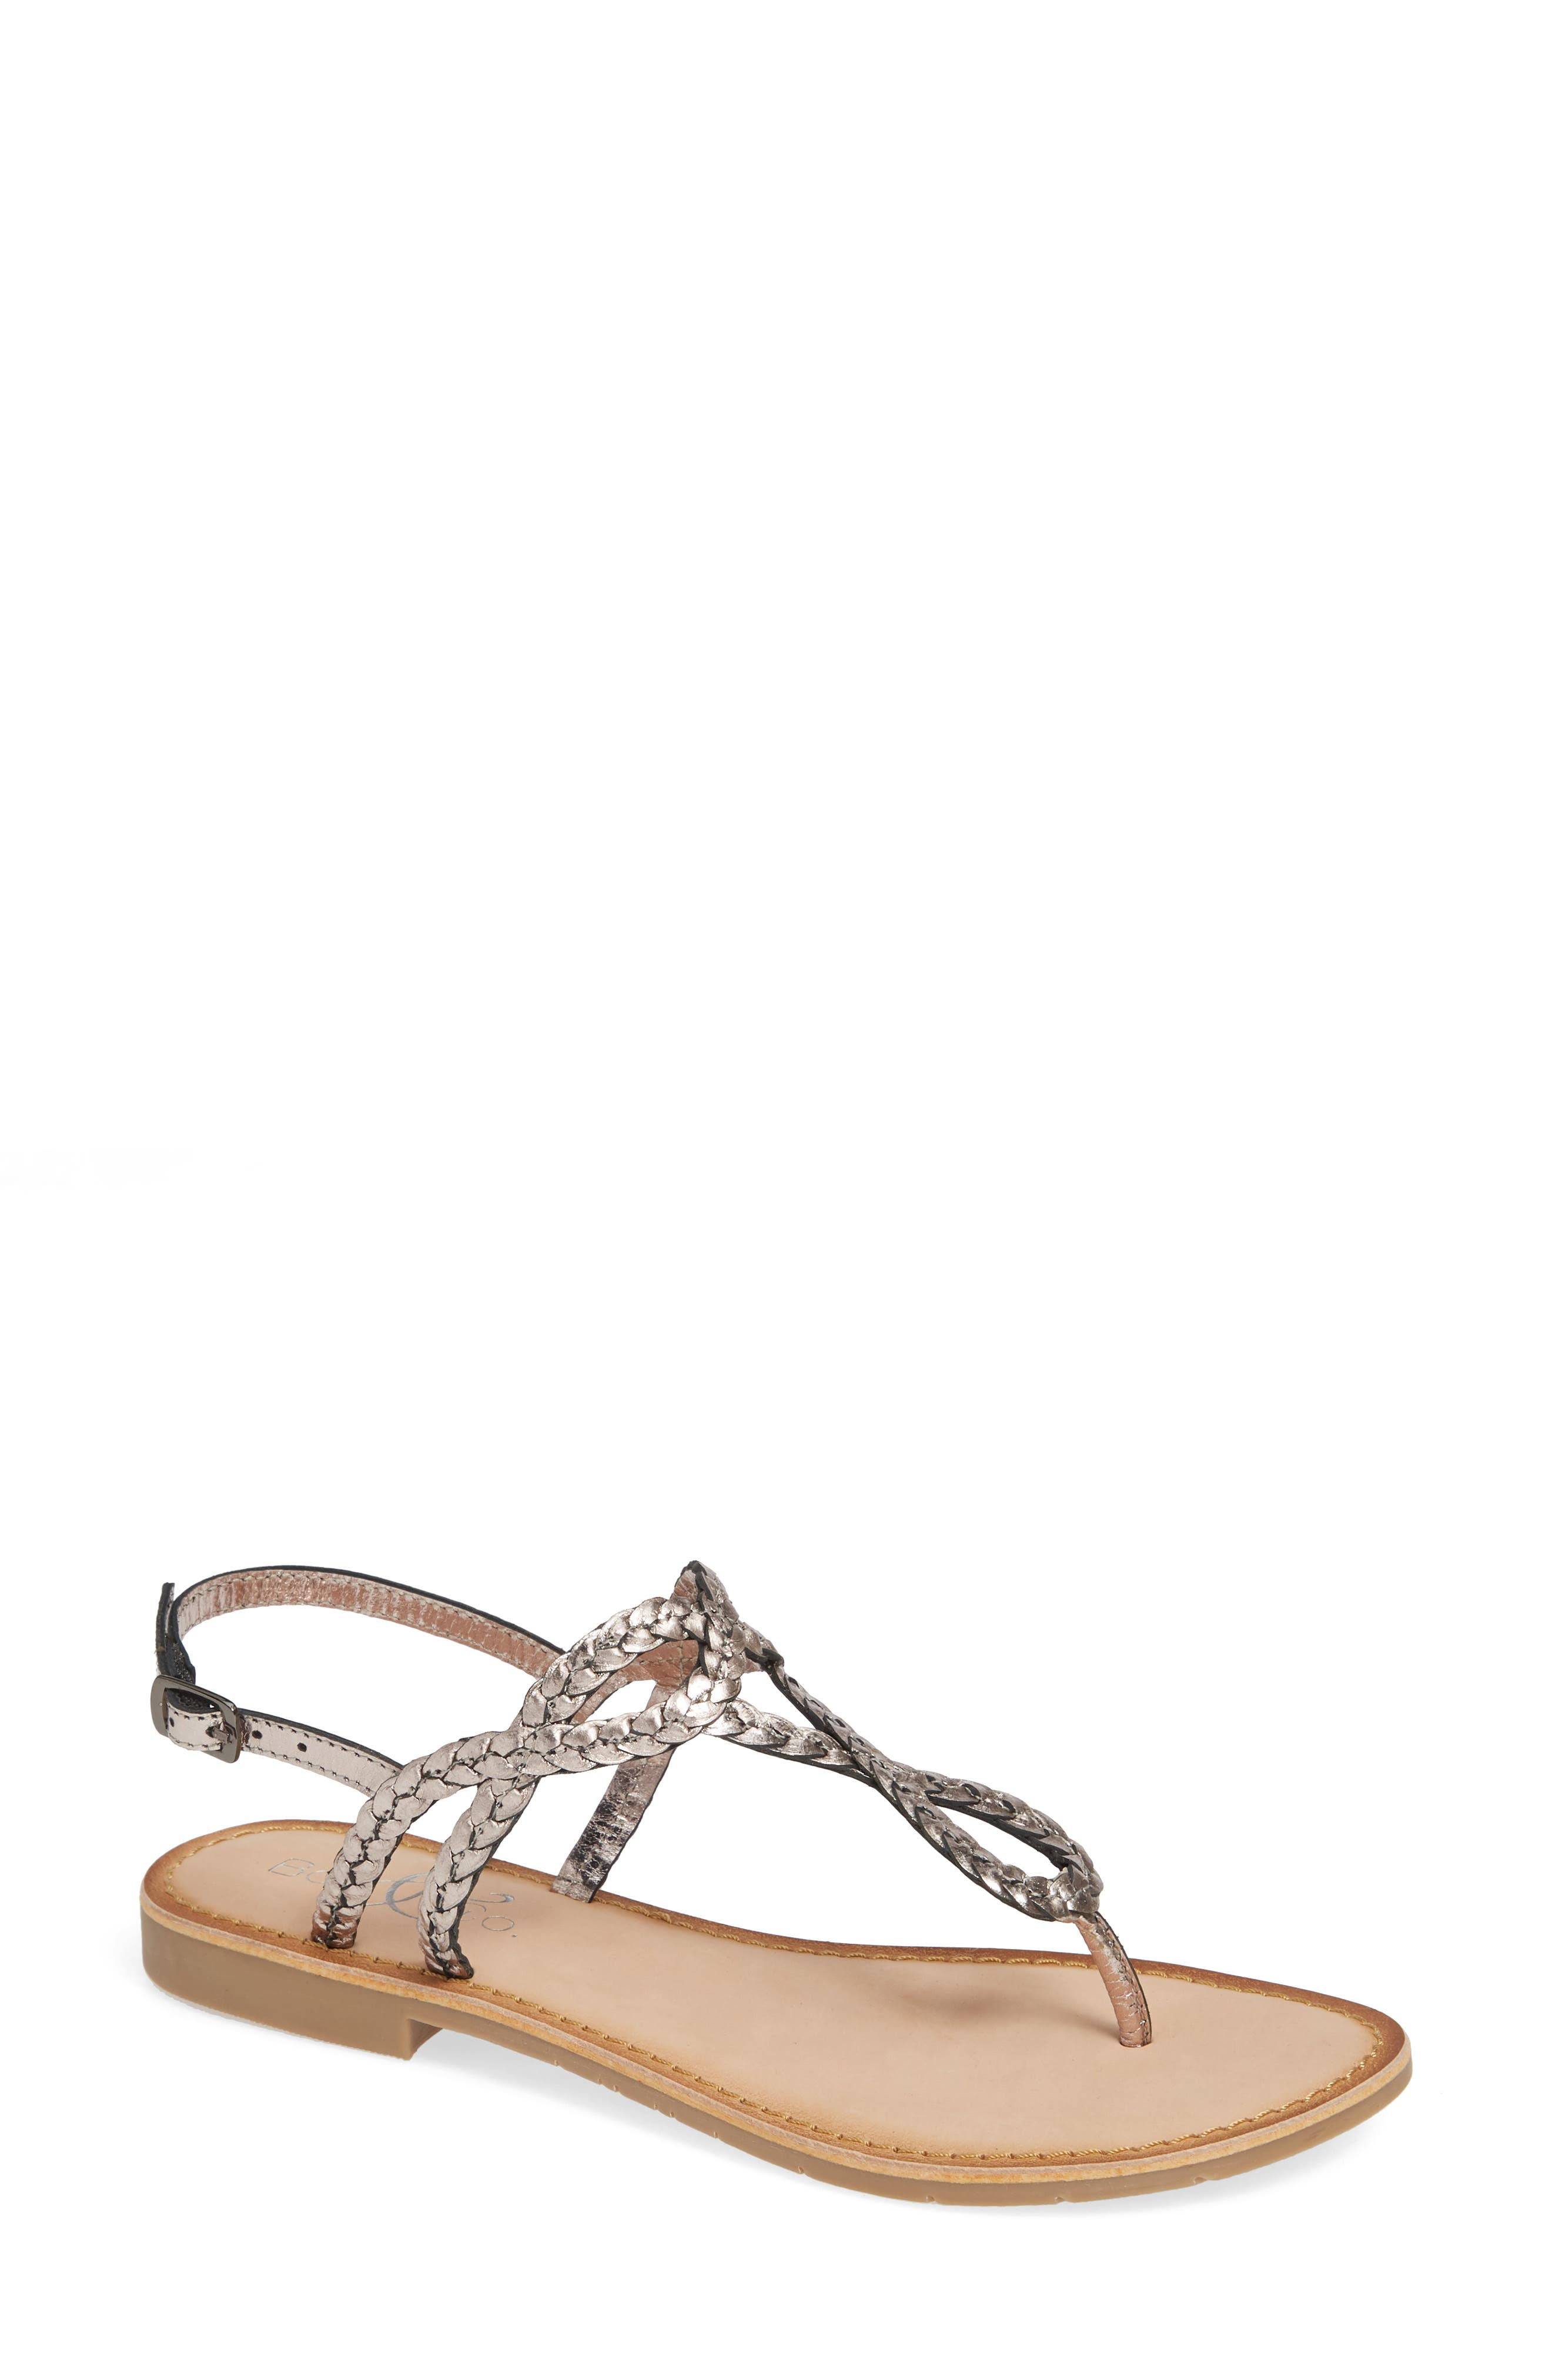 BOS. & CO. Gael Sandal, Main, color, PEWTER METALLIC LEATHER